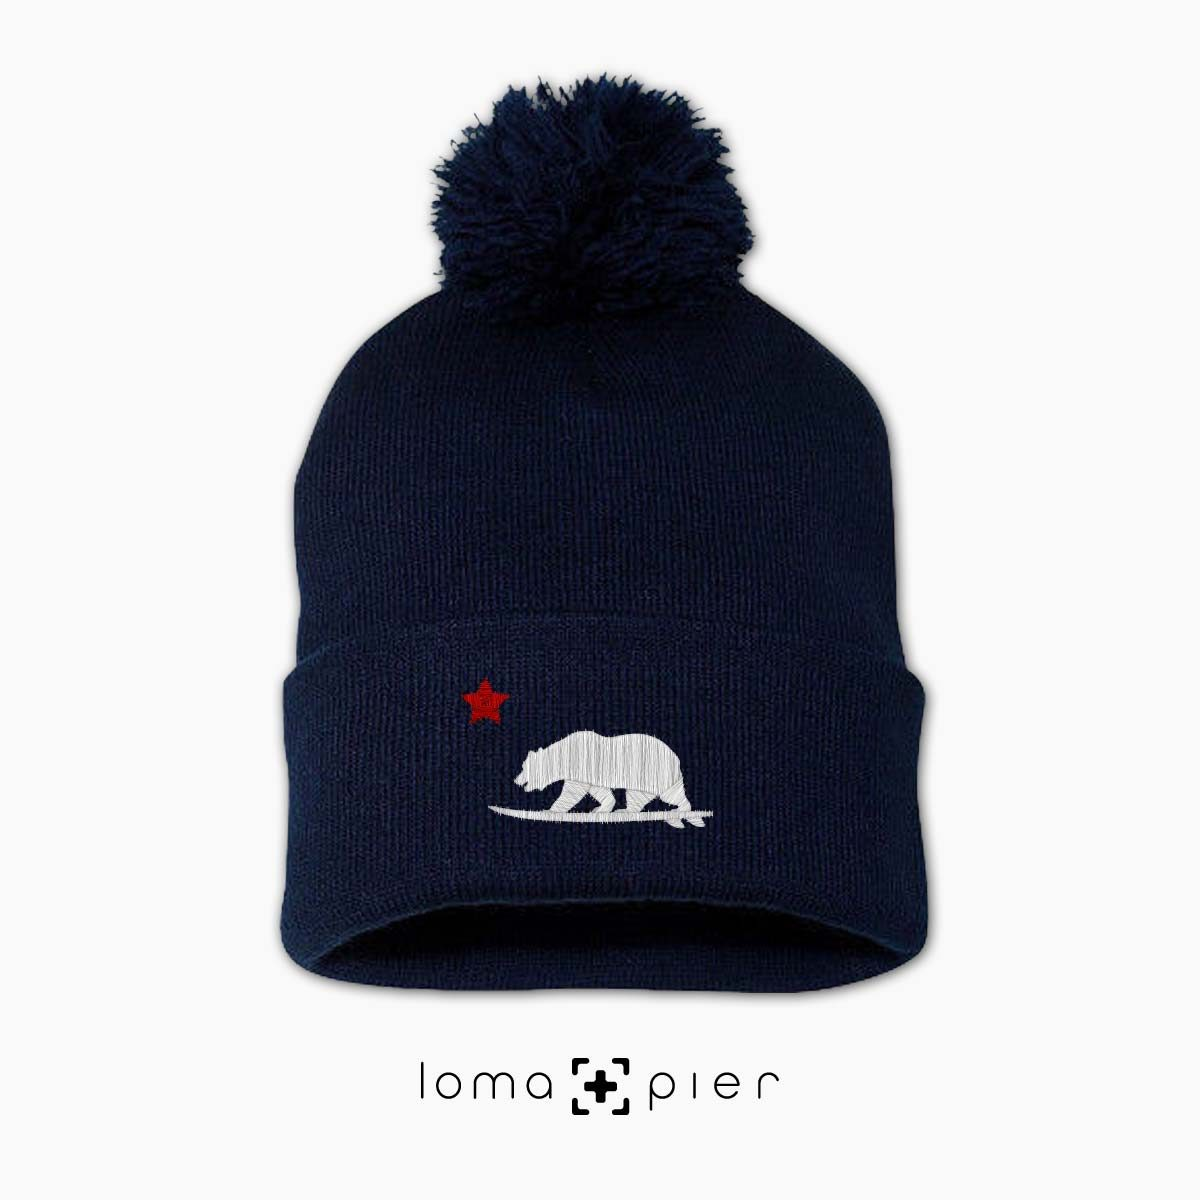 CALIFORNIA BEAR SURFING icon embroidered on a navy blue pom pom beanie with white and red thread by loma+pier hat store